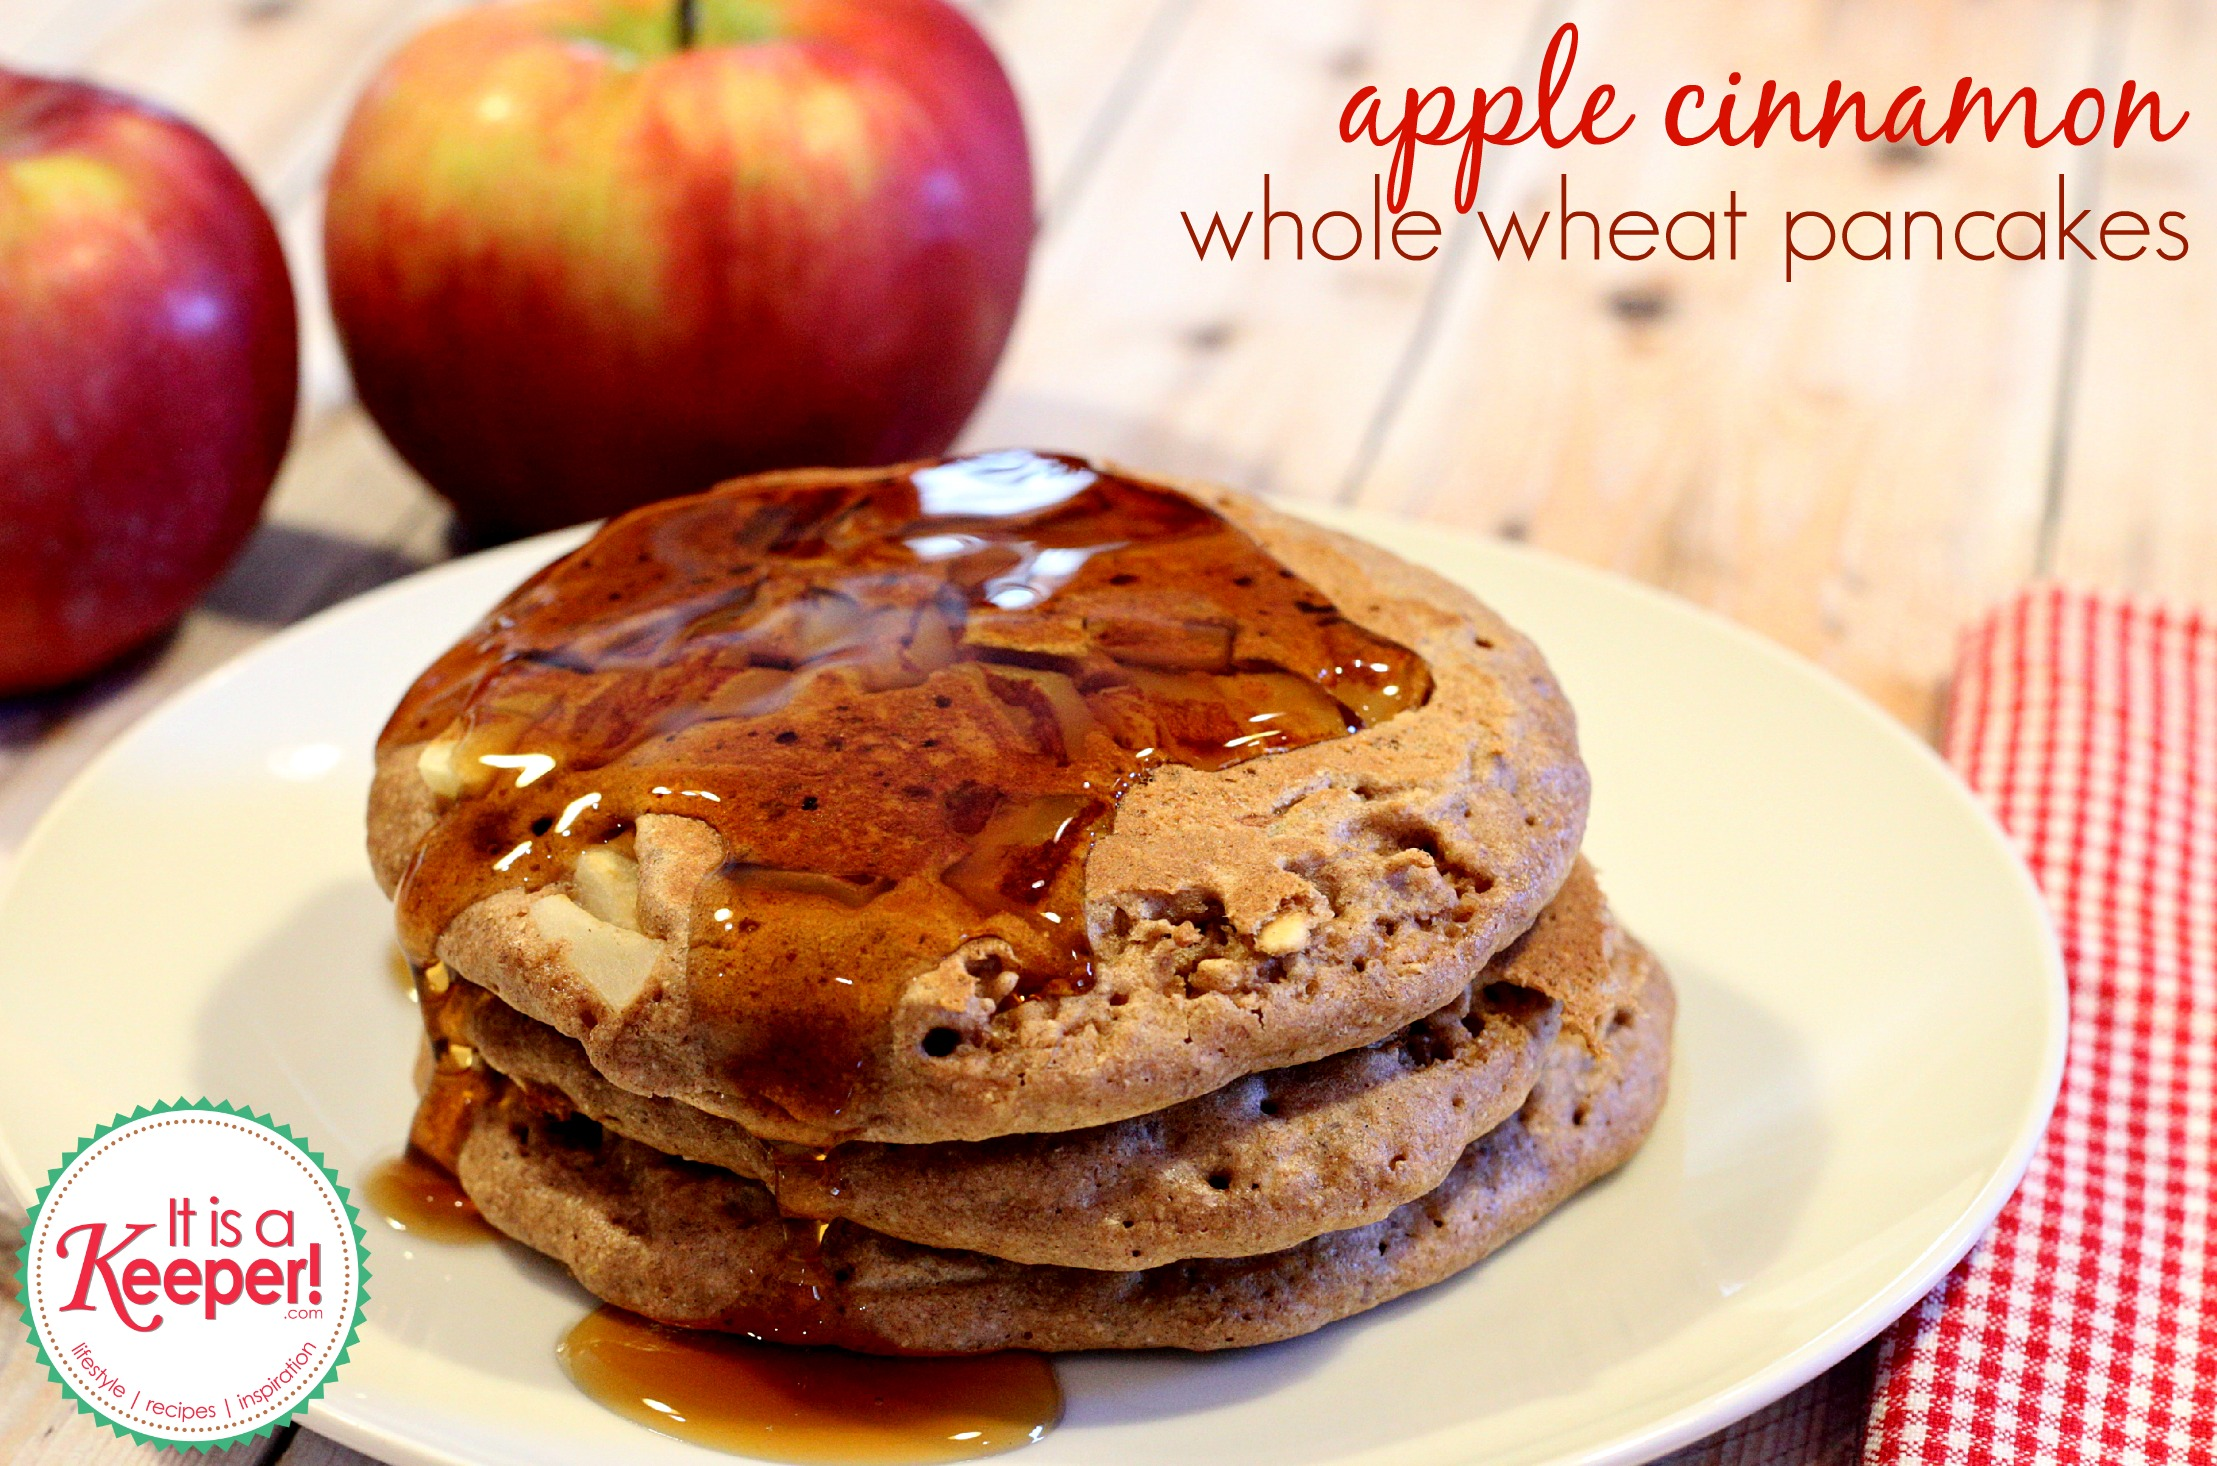 Apple Cinnamon Whole Wheat Pancakes